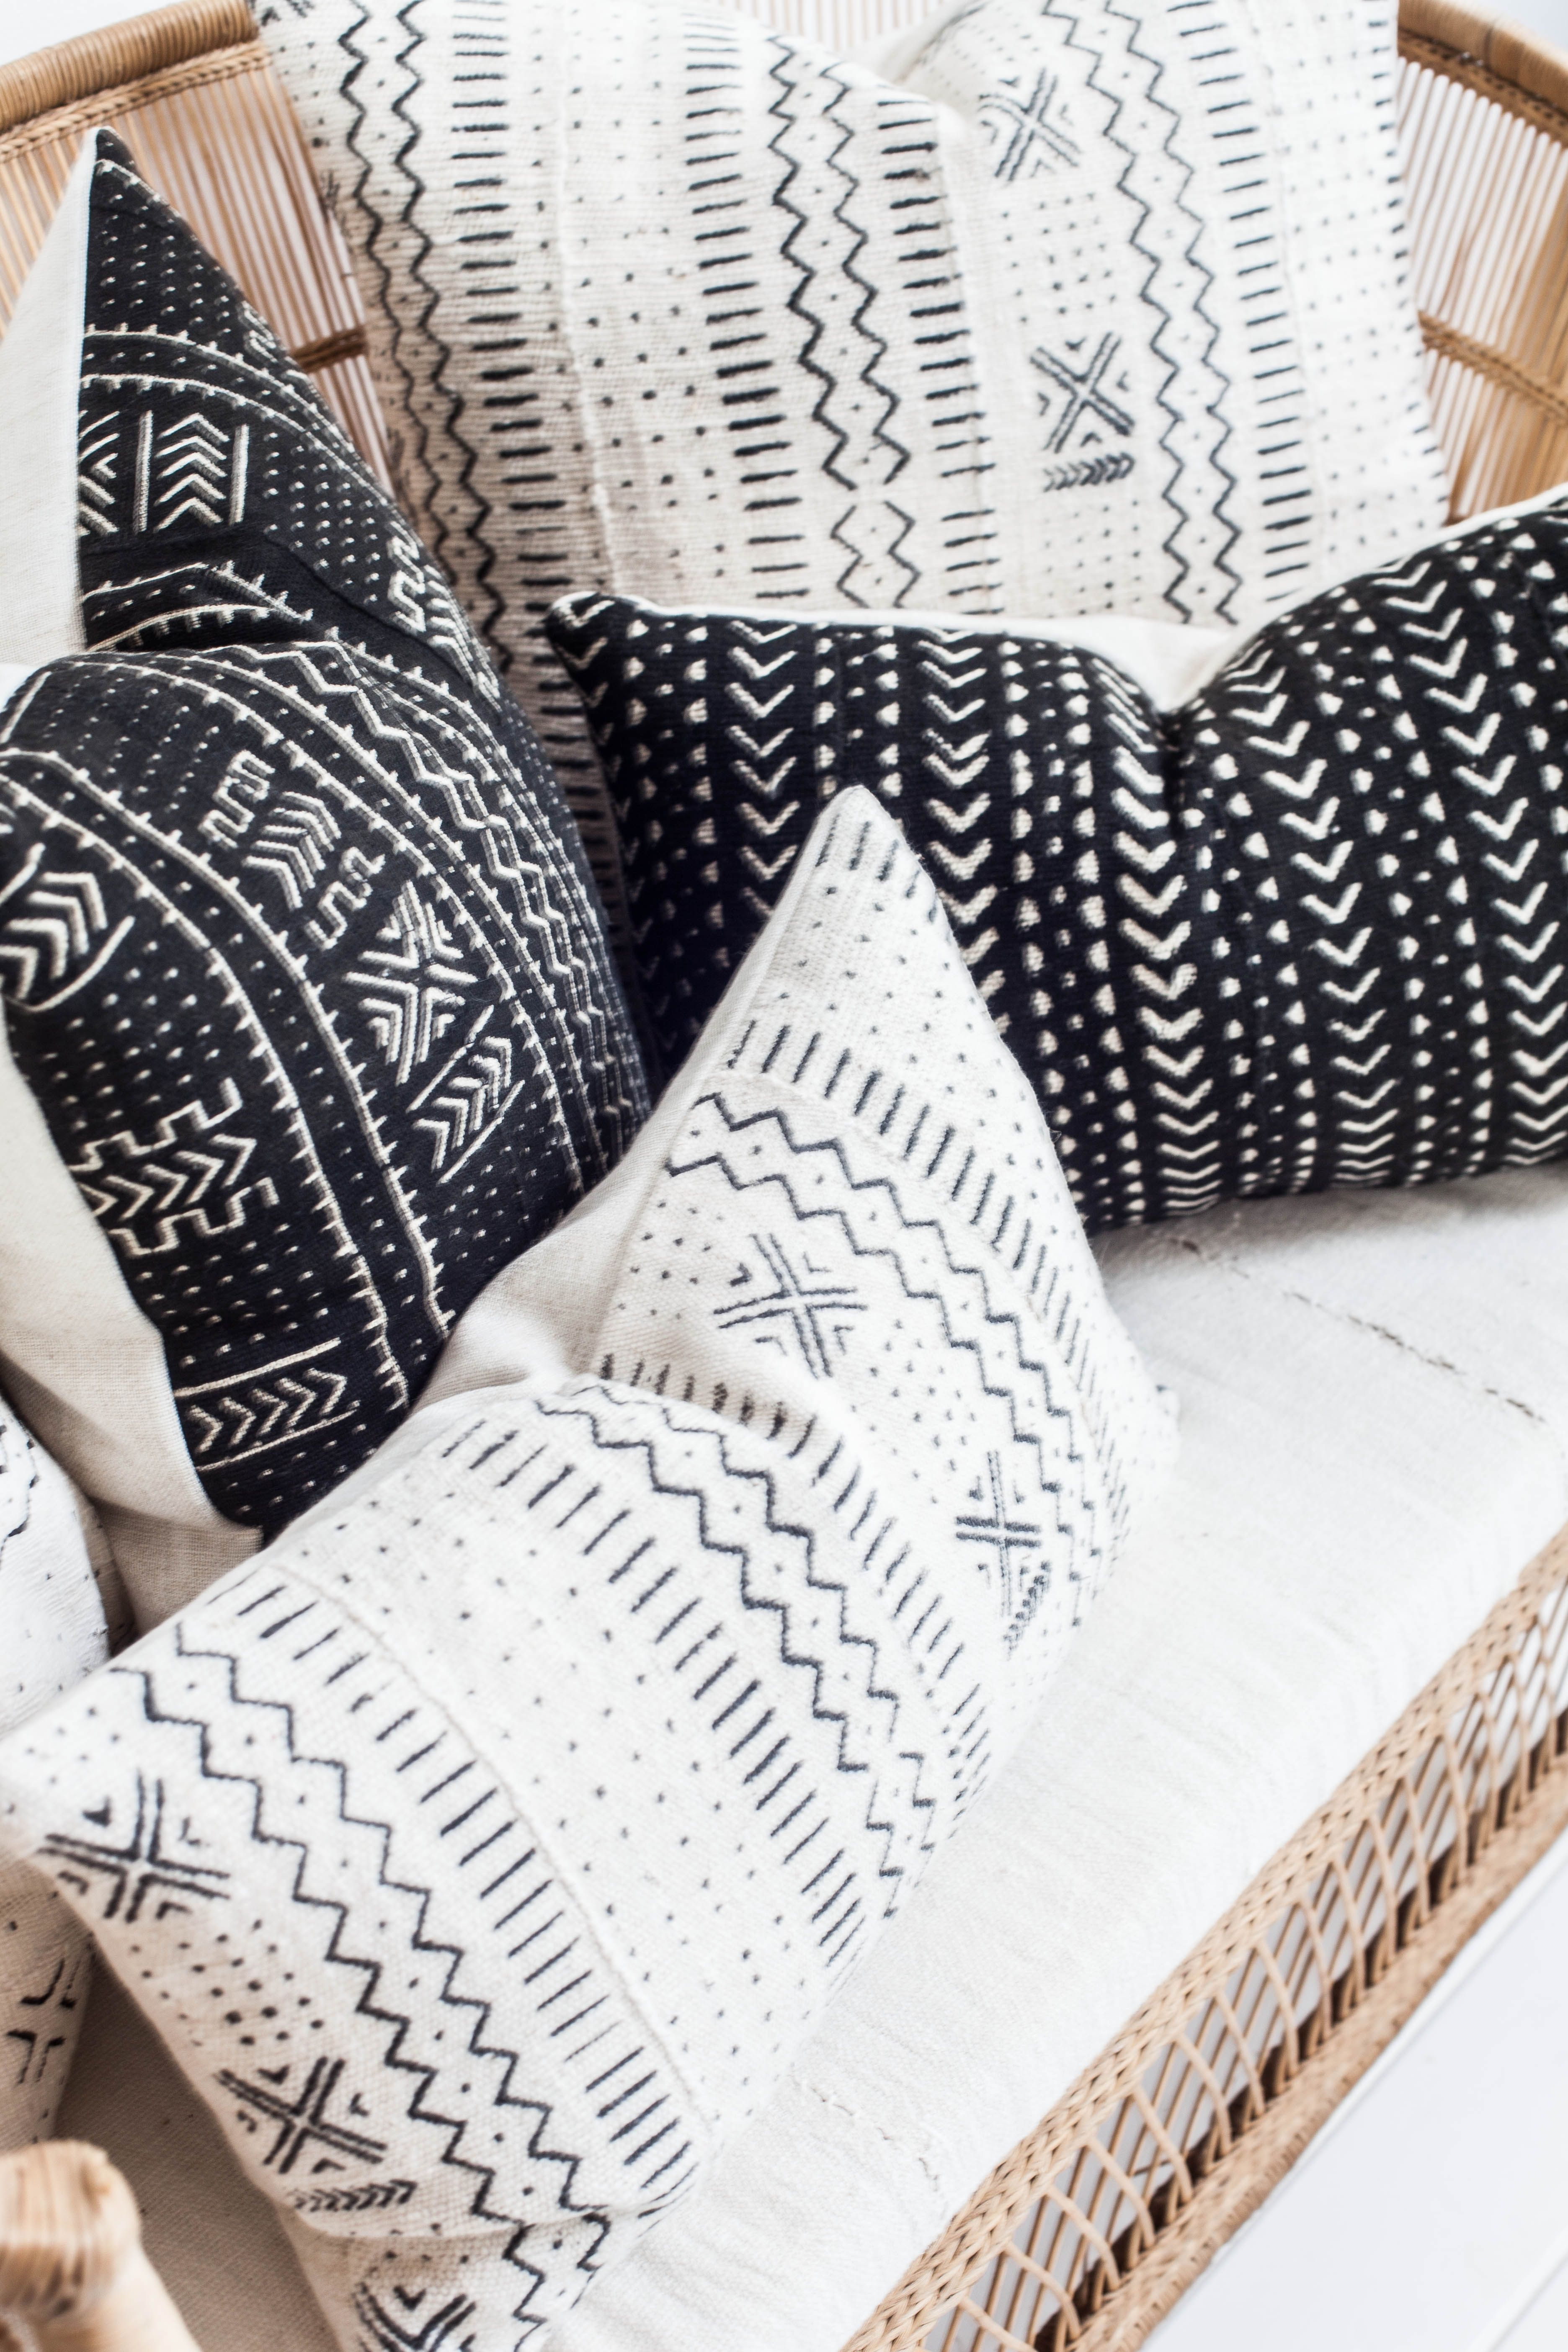 African inspired interior design ideas africans pillows and patterns